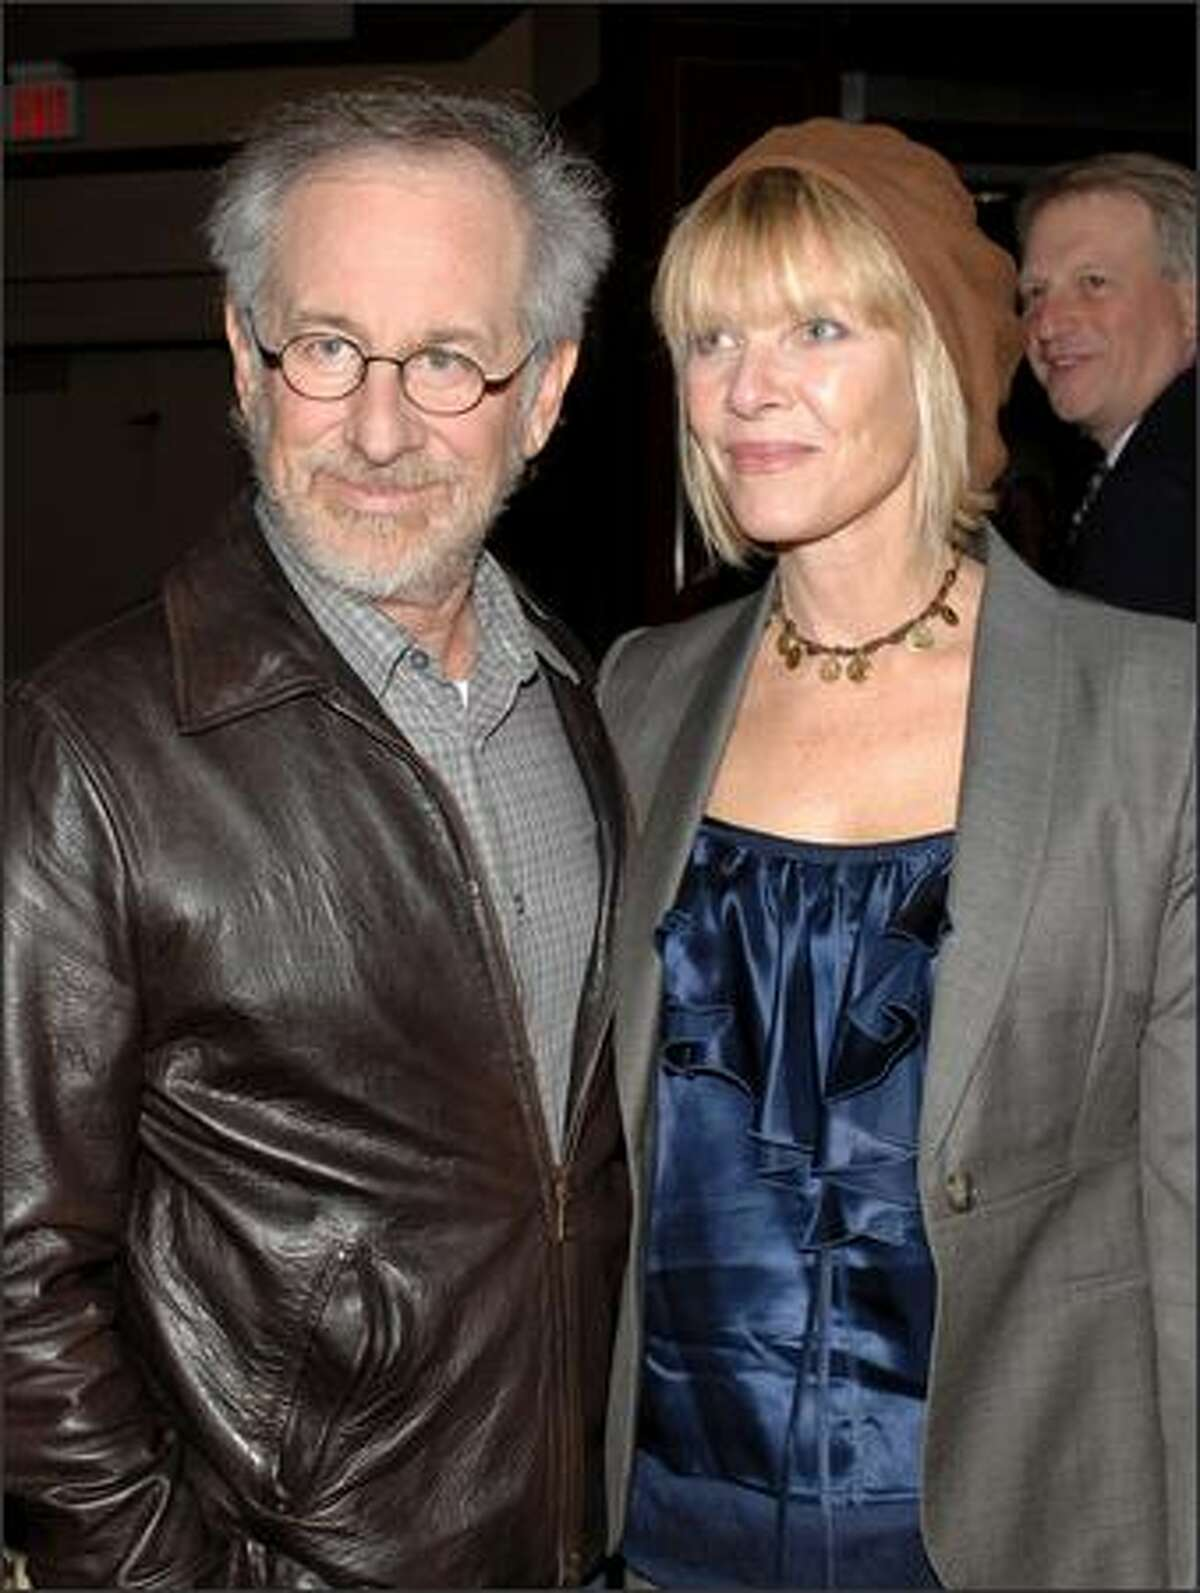 Producer/director Steven Spielberg and actress Kate Capshaw arrive. (Photo by Stephen Shugerman/Getty Images for Turner)